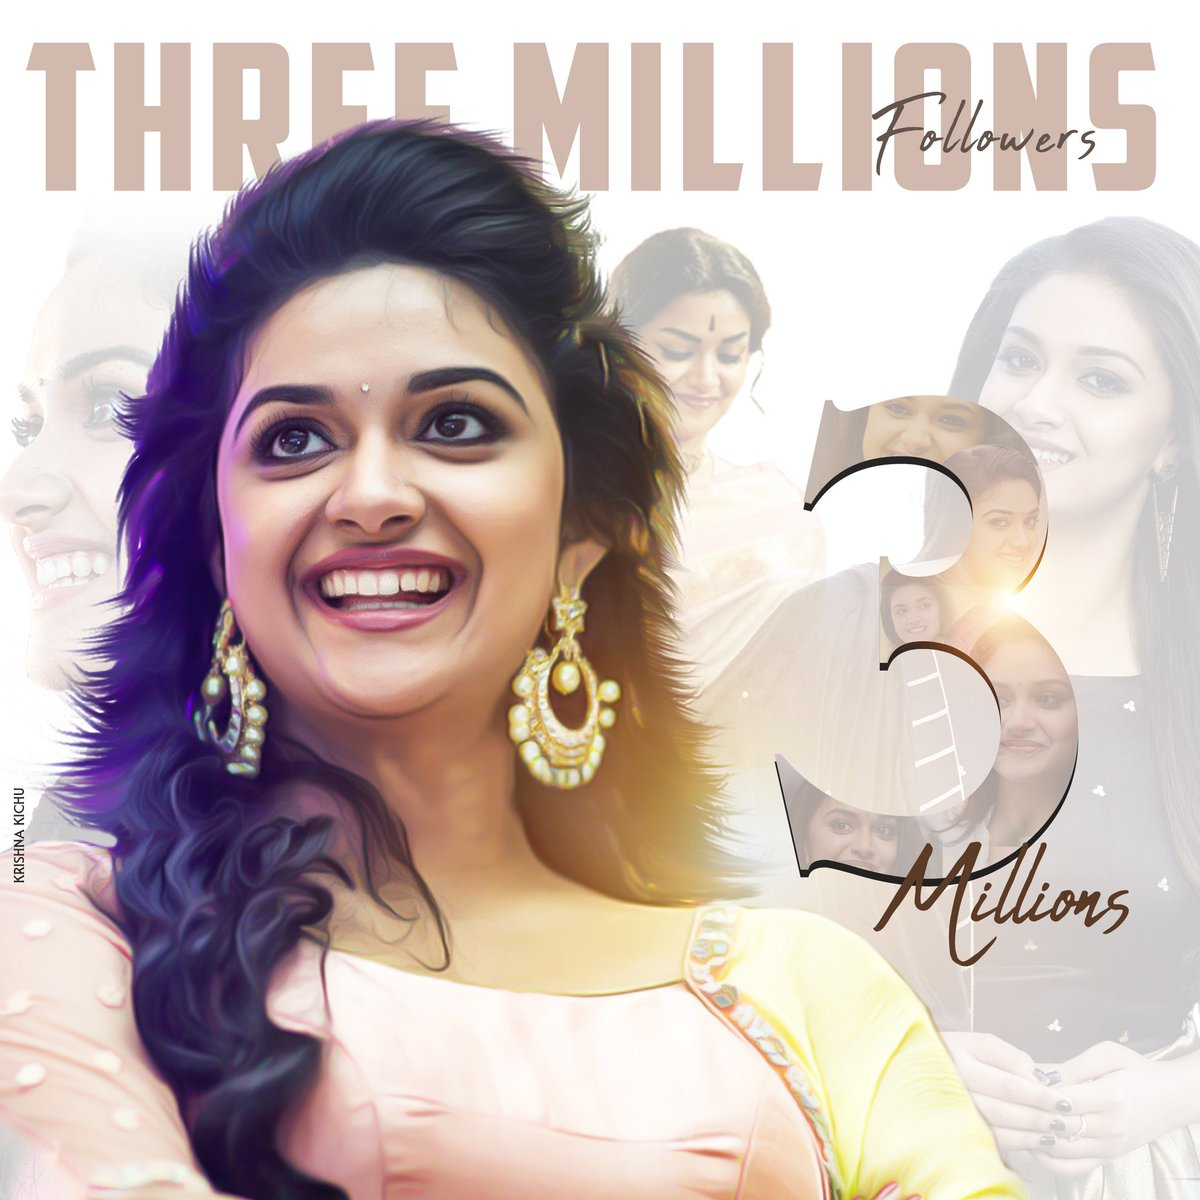 Congratulations To @KeerthyOfficial For 3M Followers.Congratulation From @actorvijay Fans..May We Bless For Our #KeerthySuresh Darling To Reach 5M Sooooon....#KeerthySuresh @keerthy_kdfc  #Masterpic.twitter.com/hiOrBPSvLg